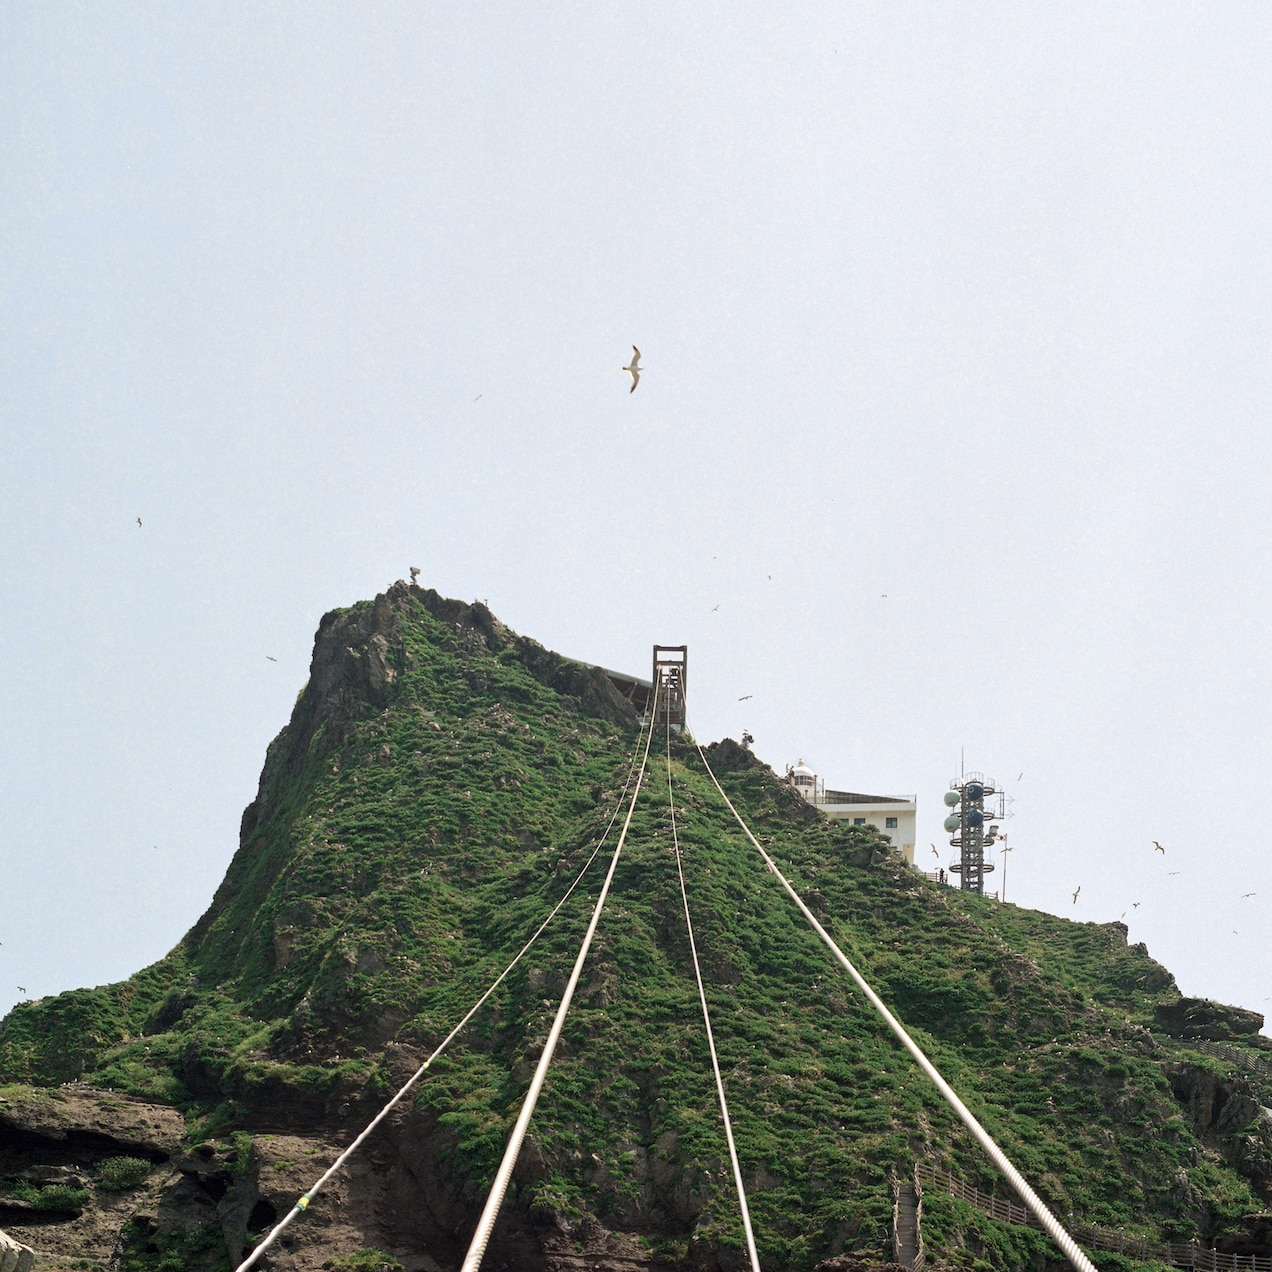 A cable car carries food and other supplies from the east island closer to the military base, which cannot be photographed for security reasons.